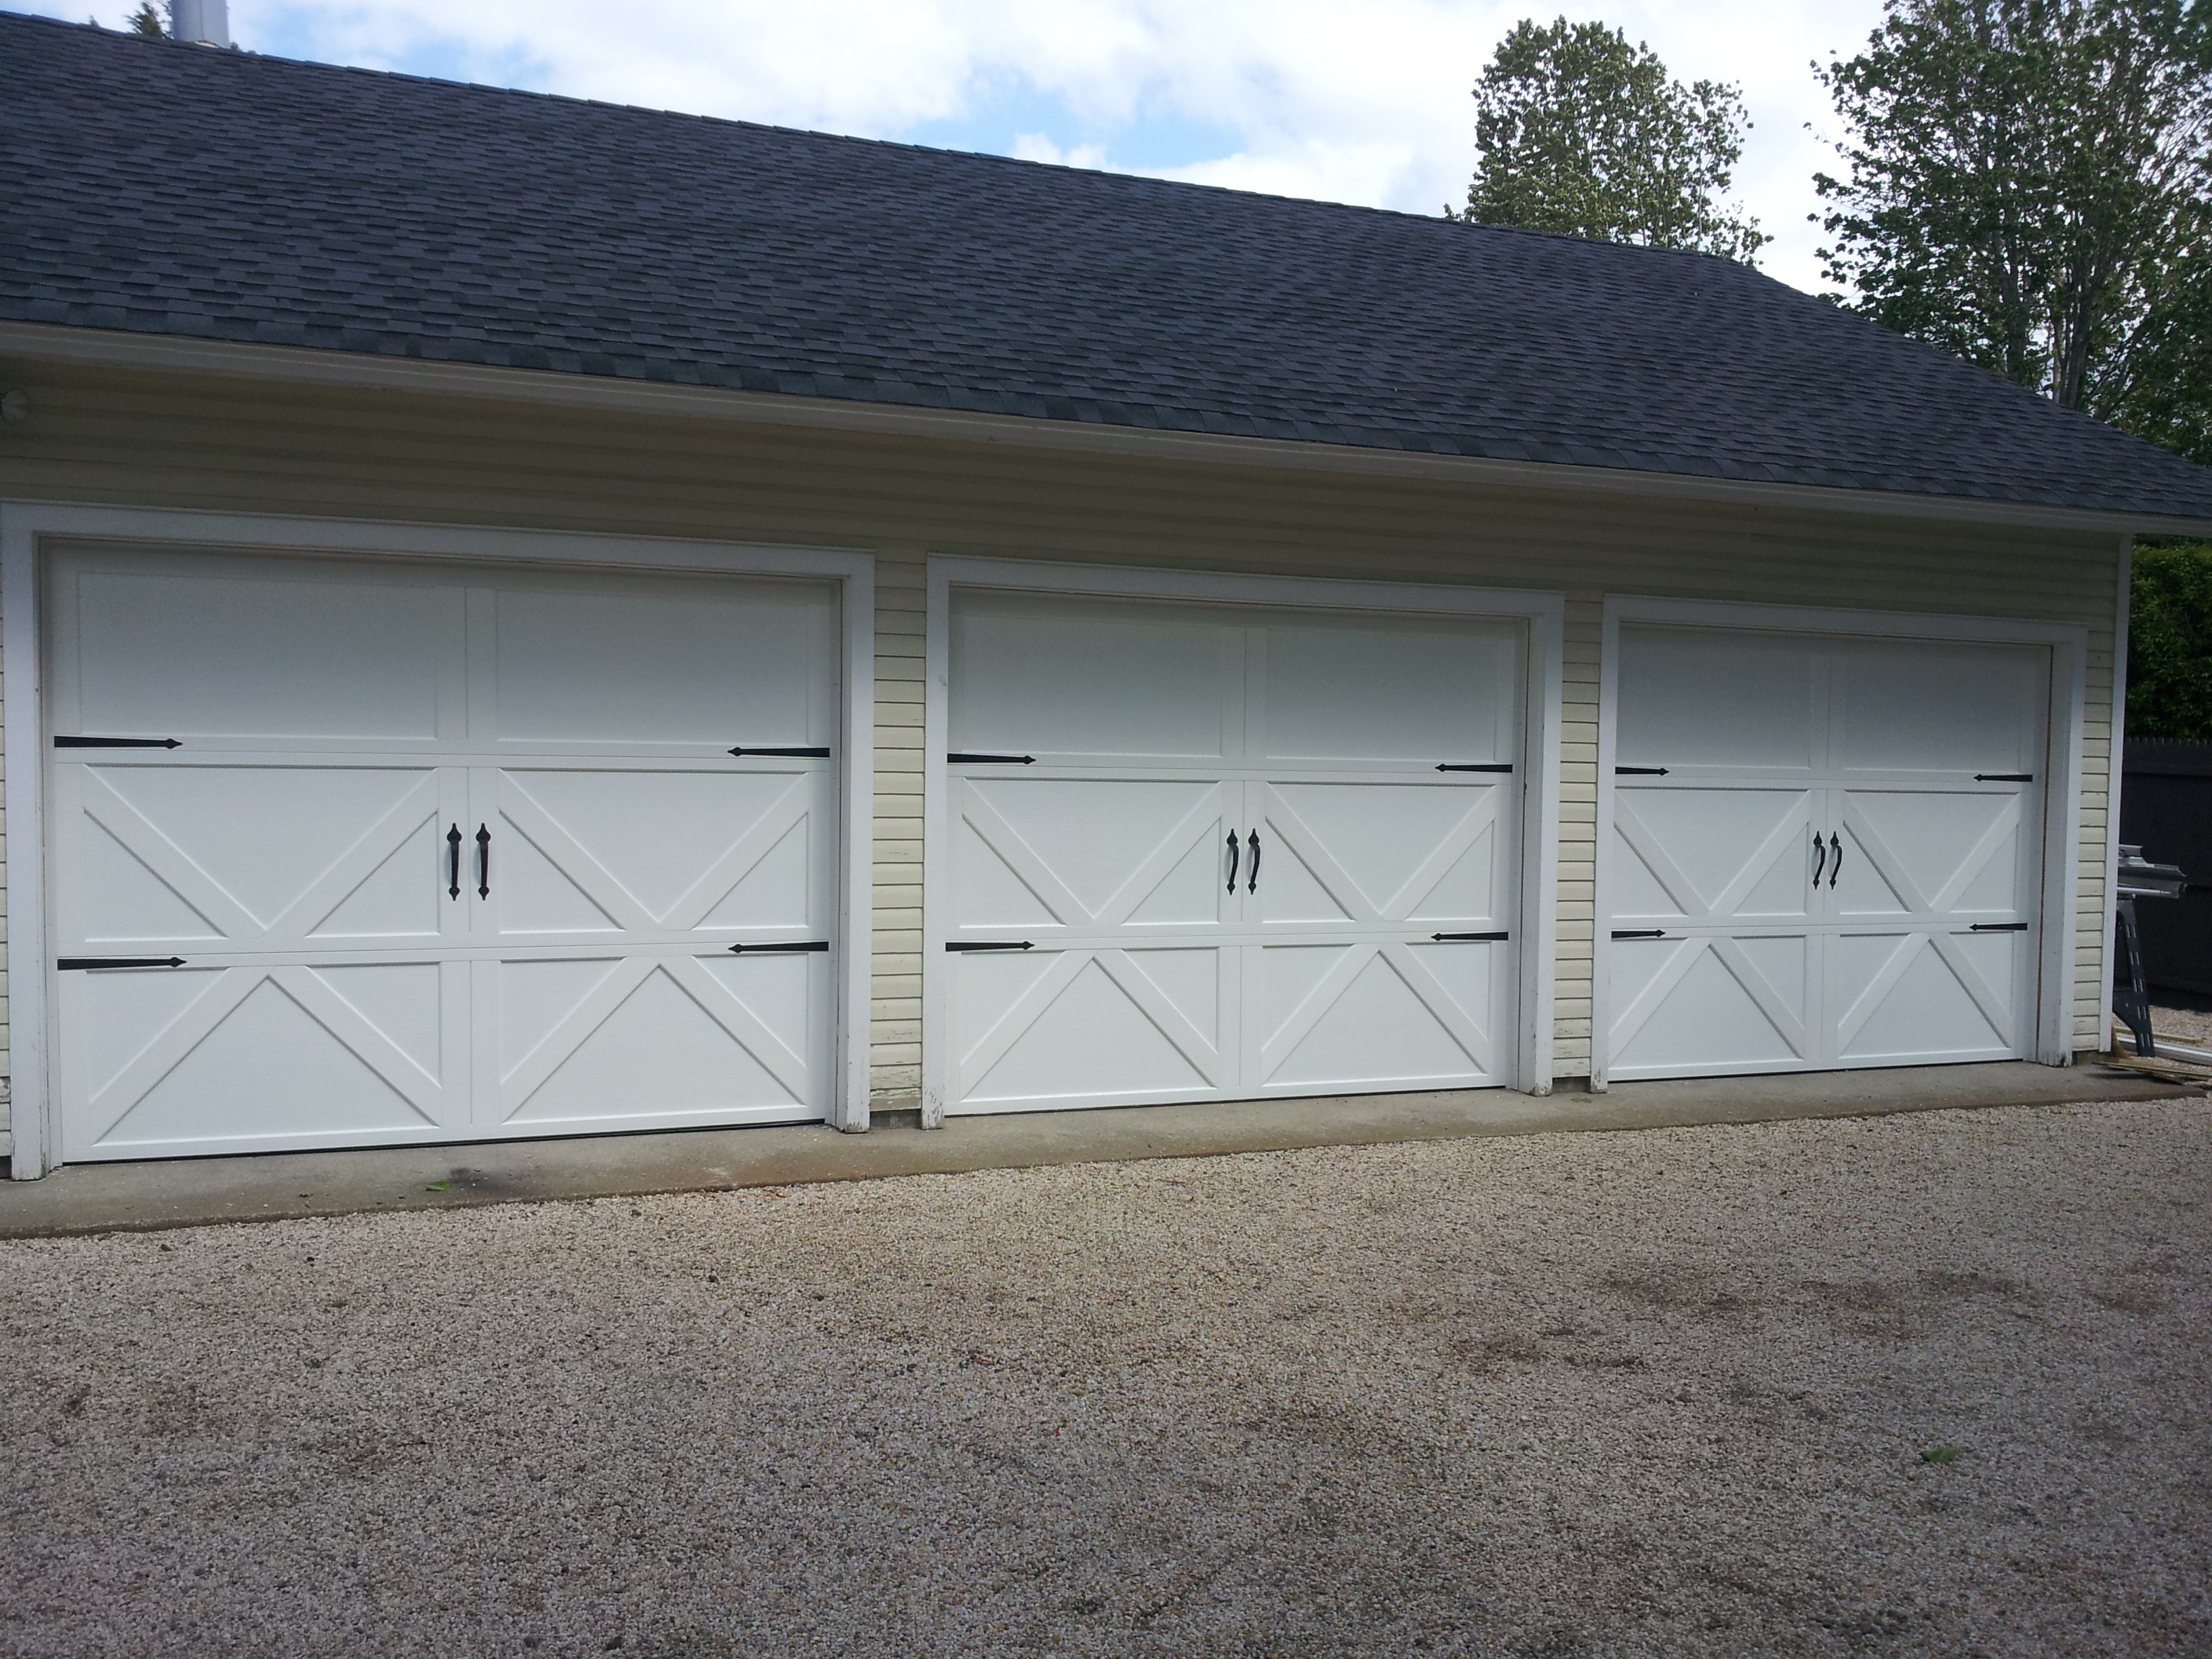 2448 #576874 Big A's Garage Doors Inc. Coupons Near Me In Manorville 8coupons picture/photo Garage Doors Near Me 37393264